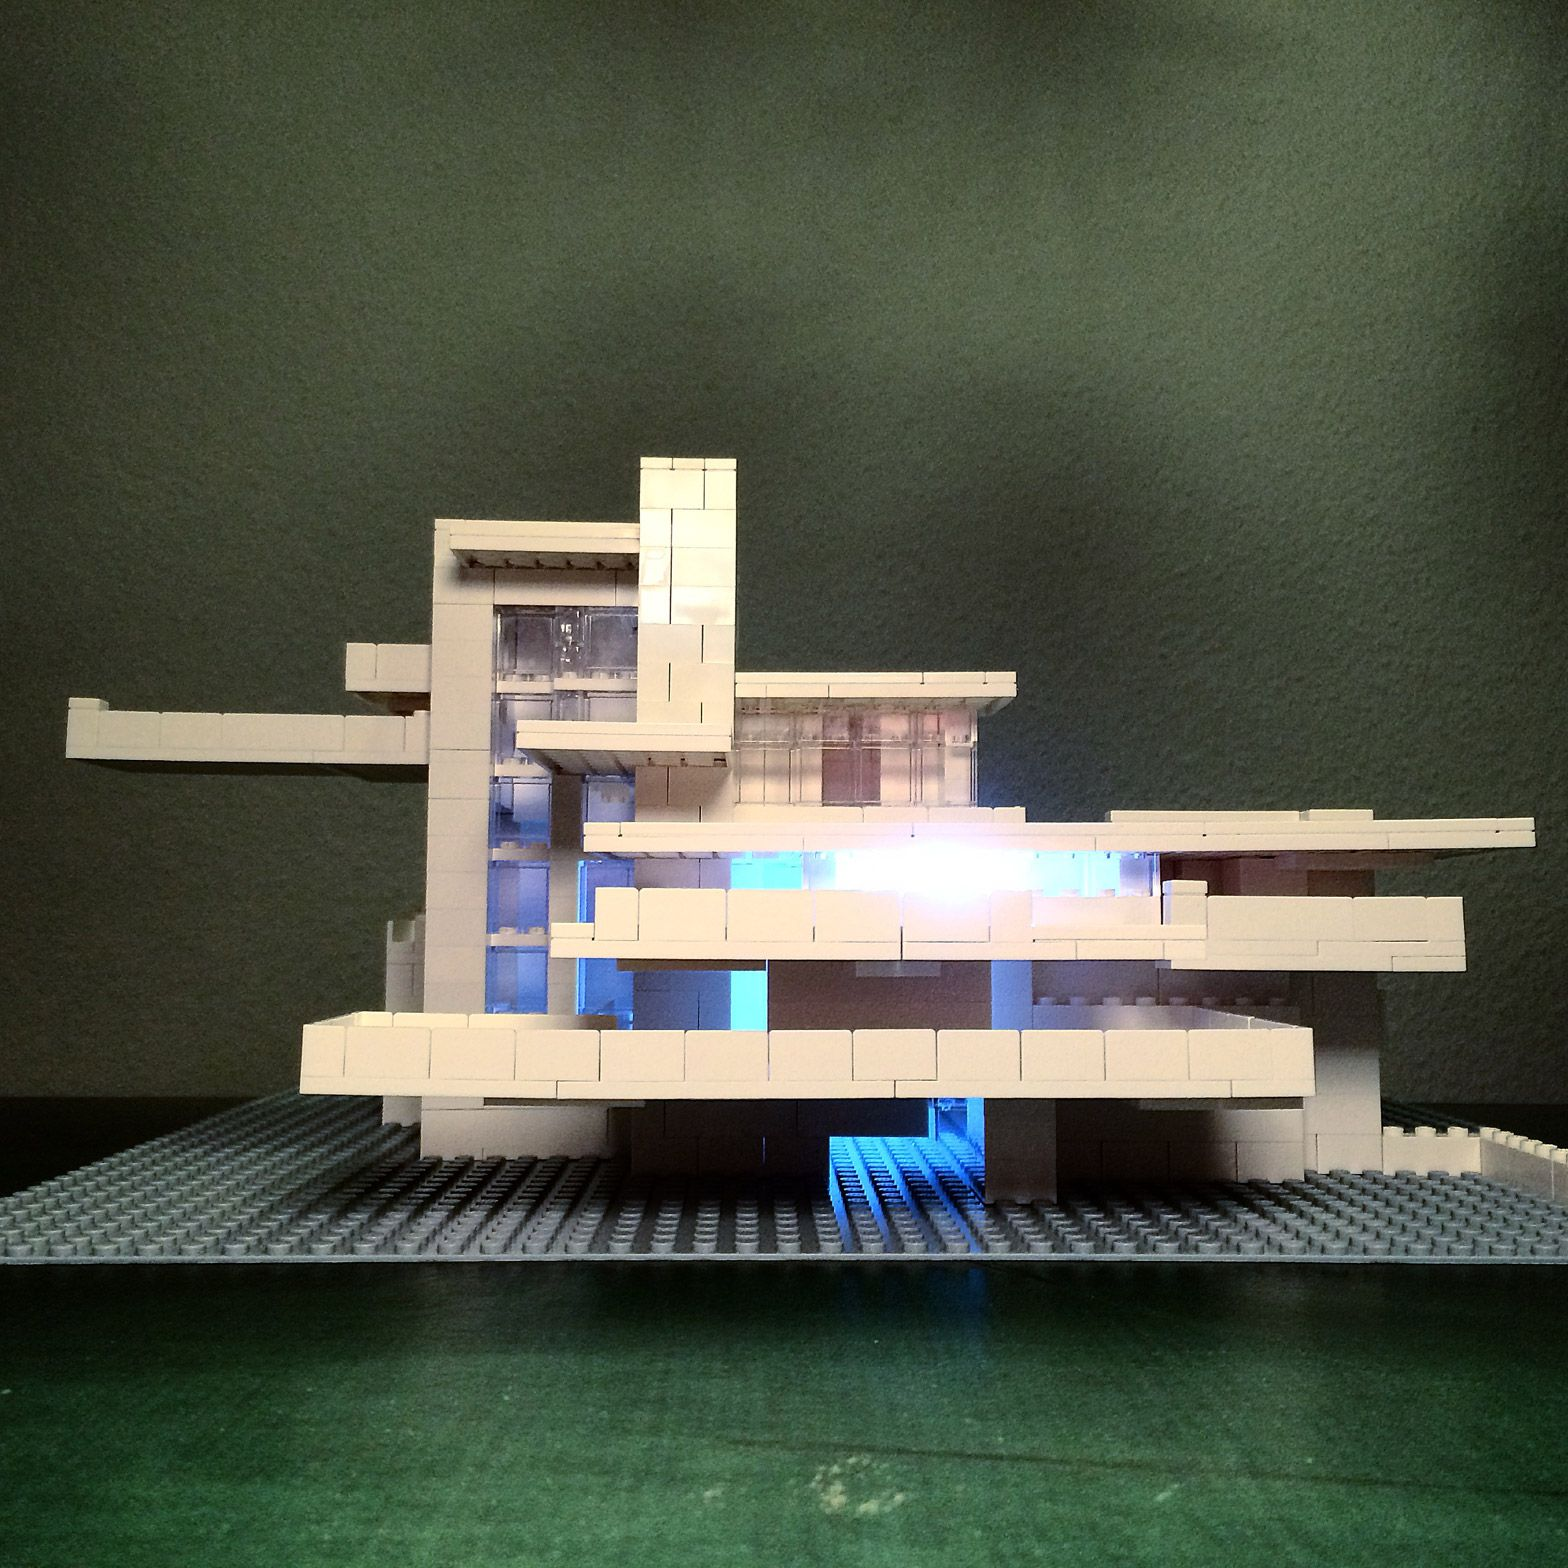 falling water by frank lloyd wright recreated in lego by arndt